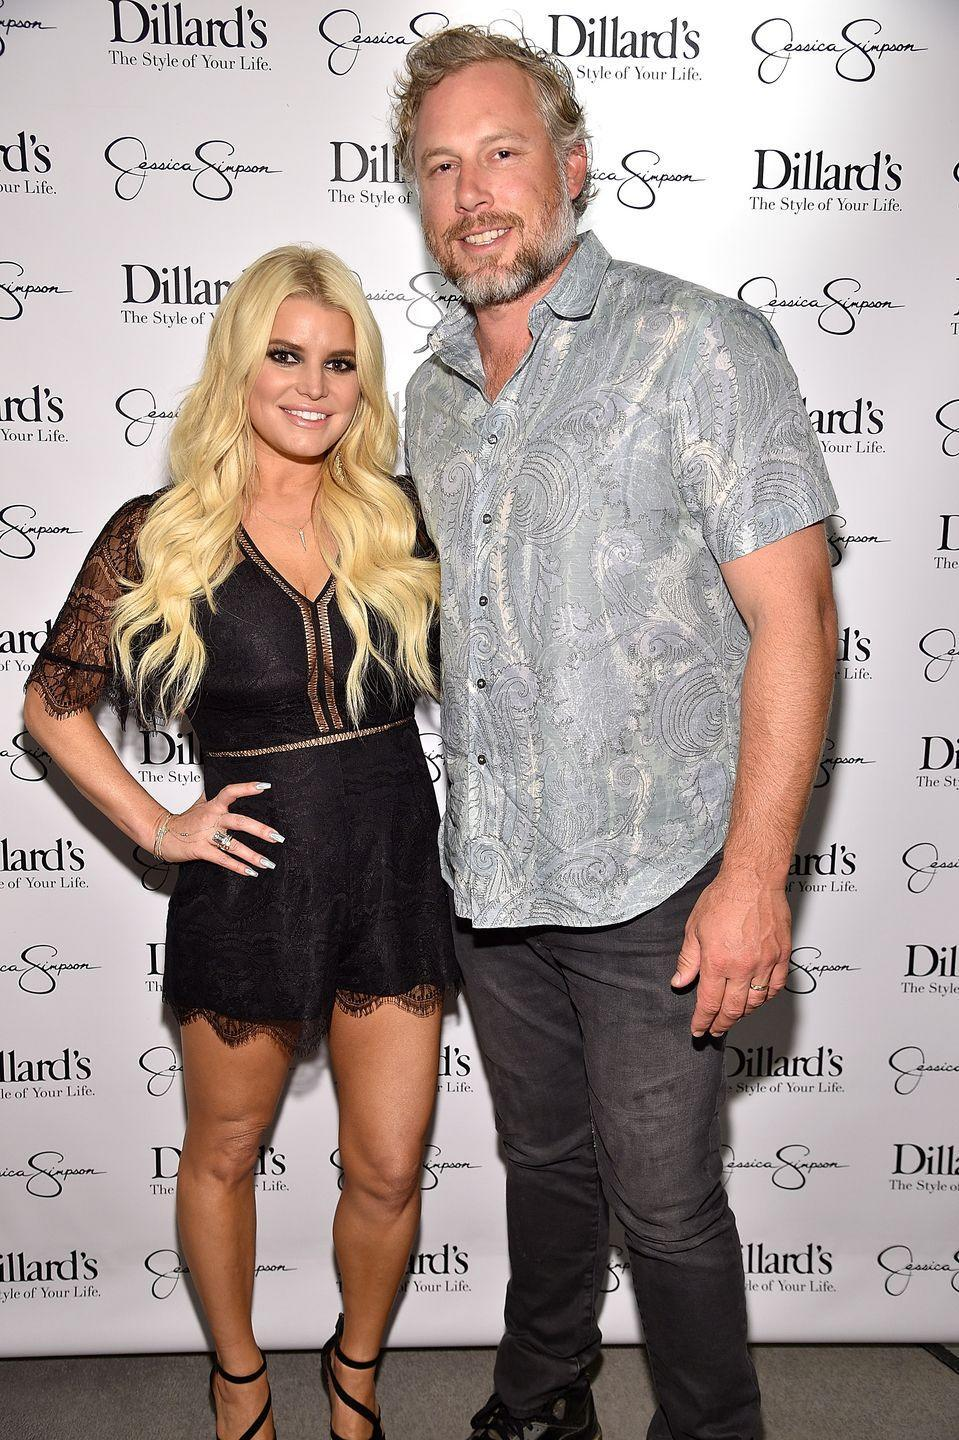 """<p>Six years after her divorce from Lachey, Simpson began dating Johnson, a retired NFL player. The two made it official in 2011. In her upcoming memoir, Simpson plans to dish on both her marriages, according to the <a href=""""https://www.harpercollins.com/9780062899965/untitled/"""" rel=""""nofollow noopener"""" target=""""_blank"""" data-ylk=""""slk:book's description"""" class=""""link rapid-noclick-resp"""">book's description</a>.</p>"""